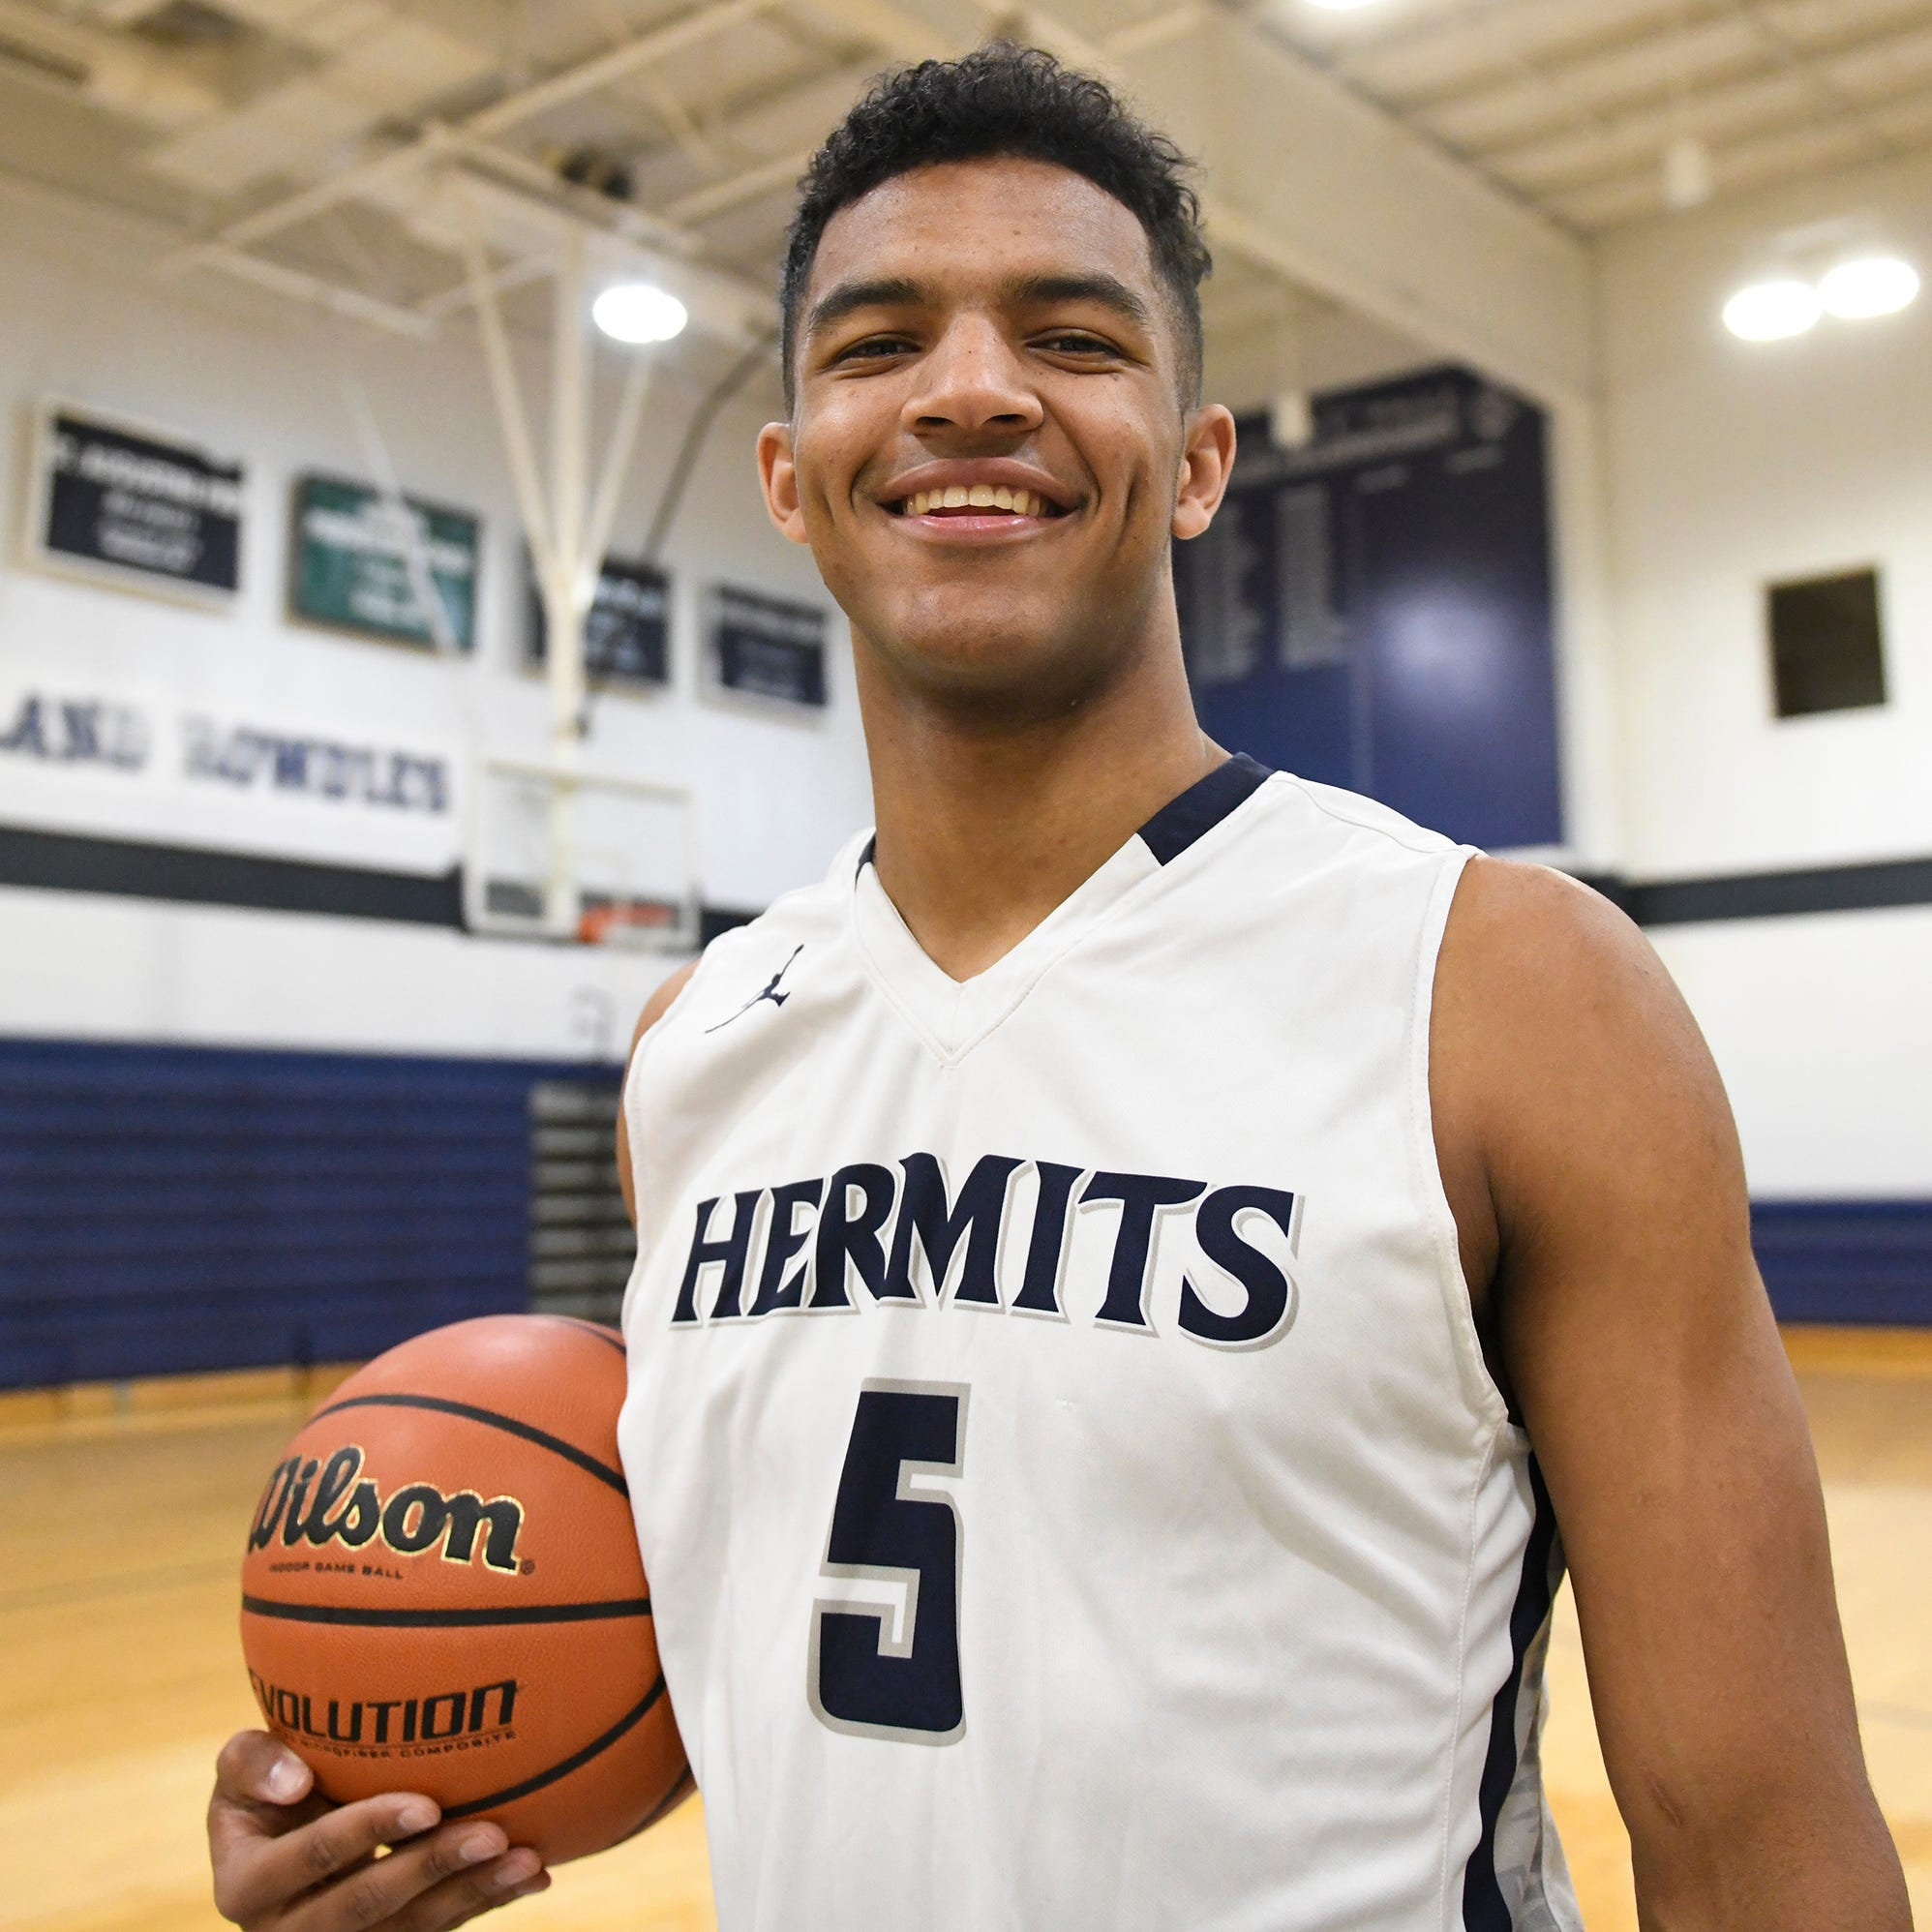 St. Augustine's Charles Solomon earns Boys' Basketball Player of the Year honors